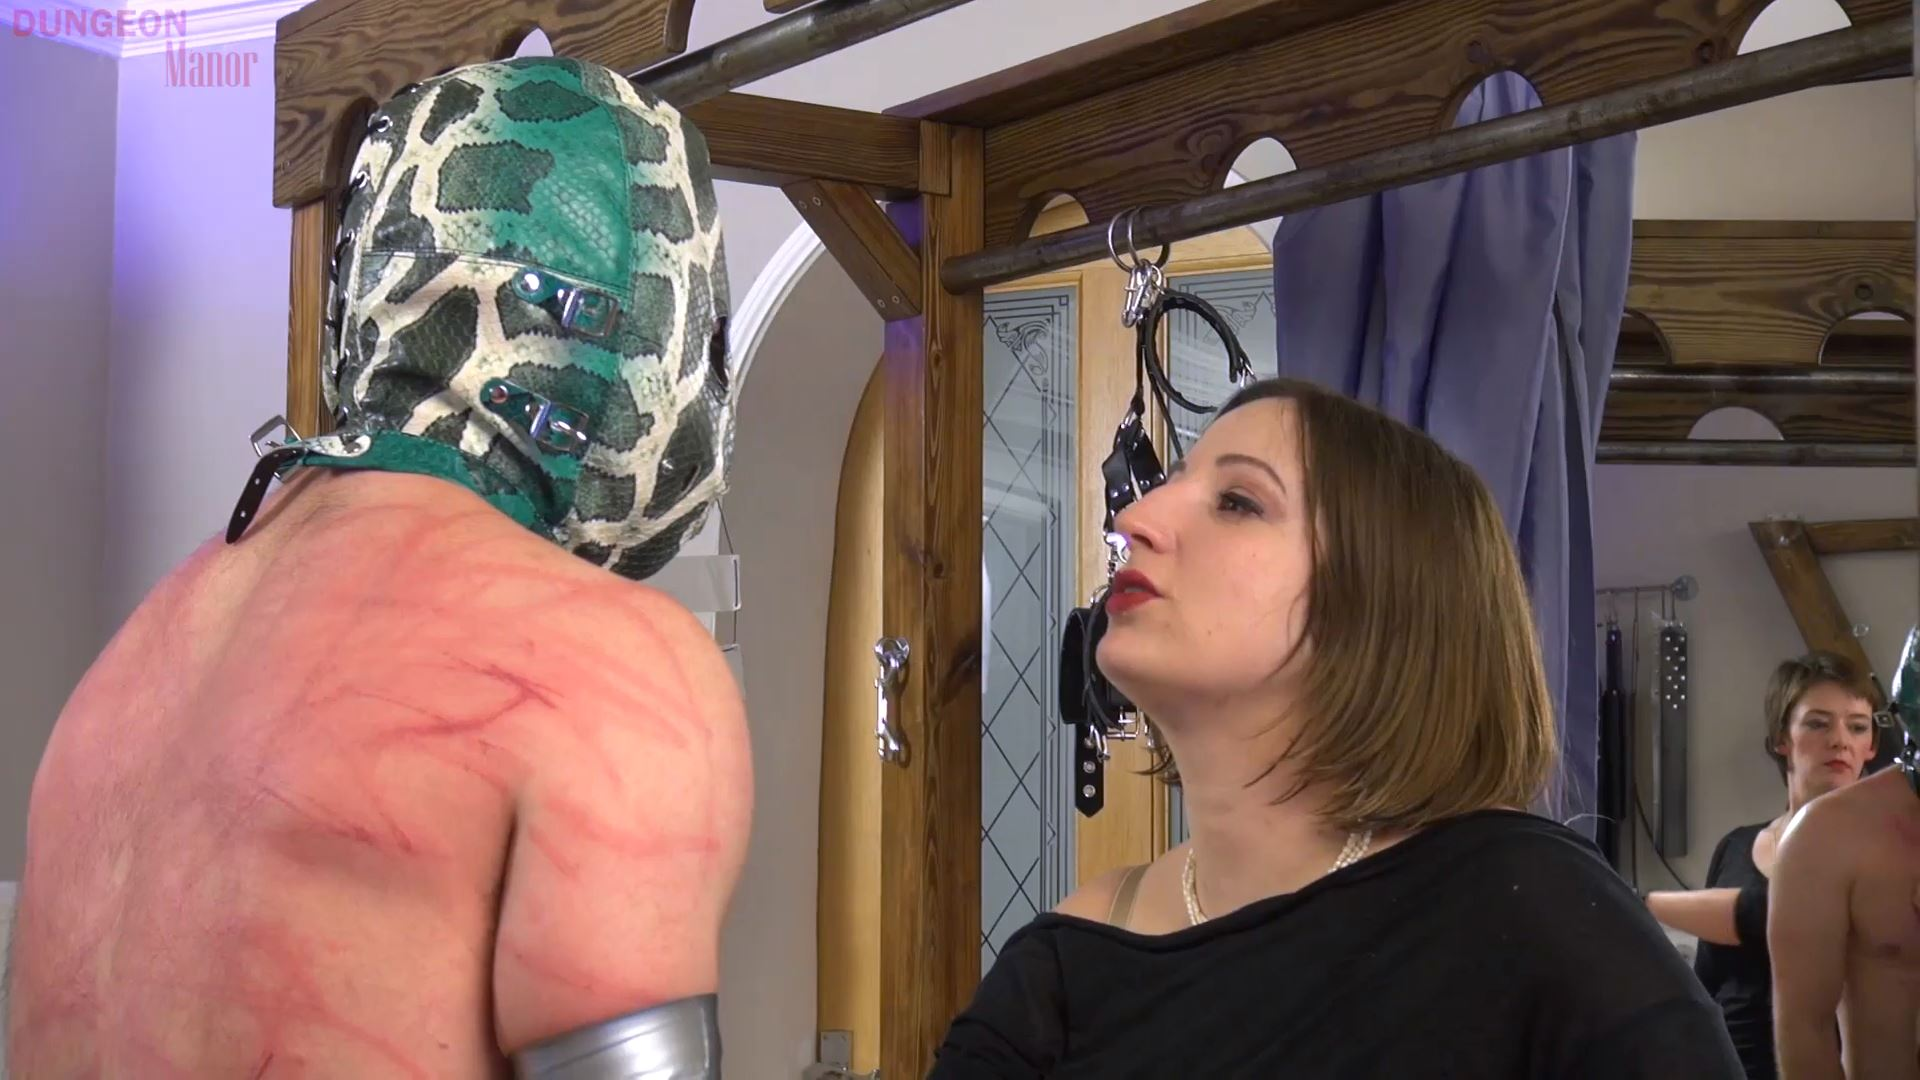 A dungeon Manor Production 431 - MISTRESS EVILYNE - FULL HD/1080p/MP4